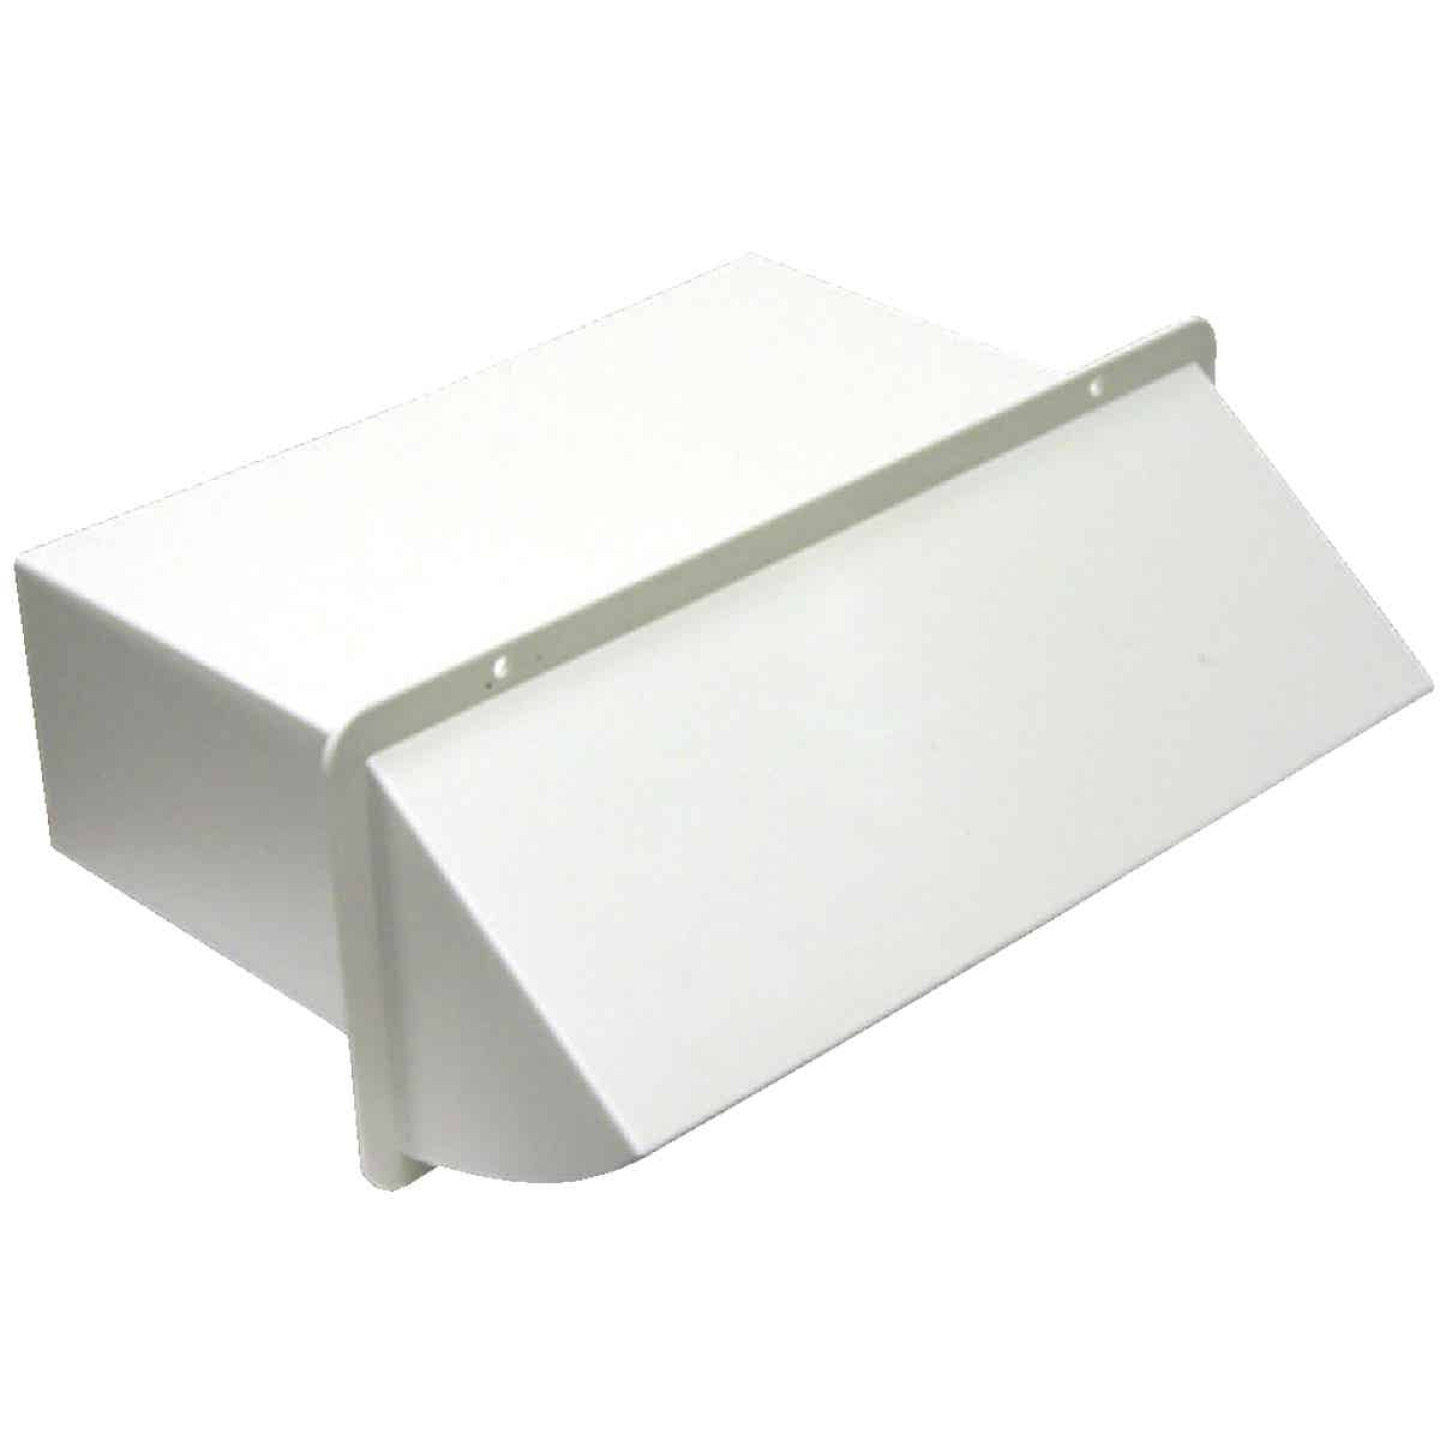 Lambro 3-1/4 In. x 10 In. White Plastic Kitchen Wall Vent Cap with Damper Image 1